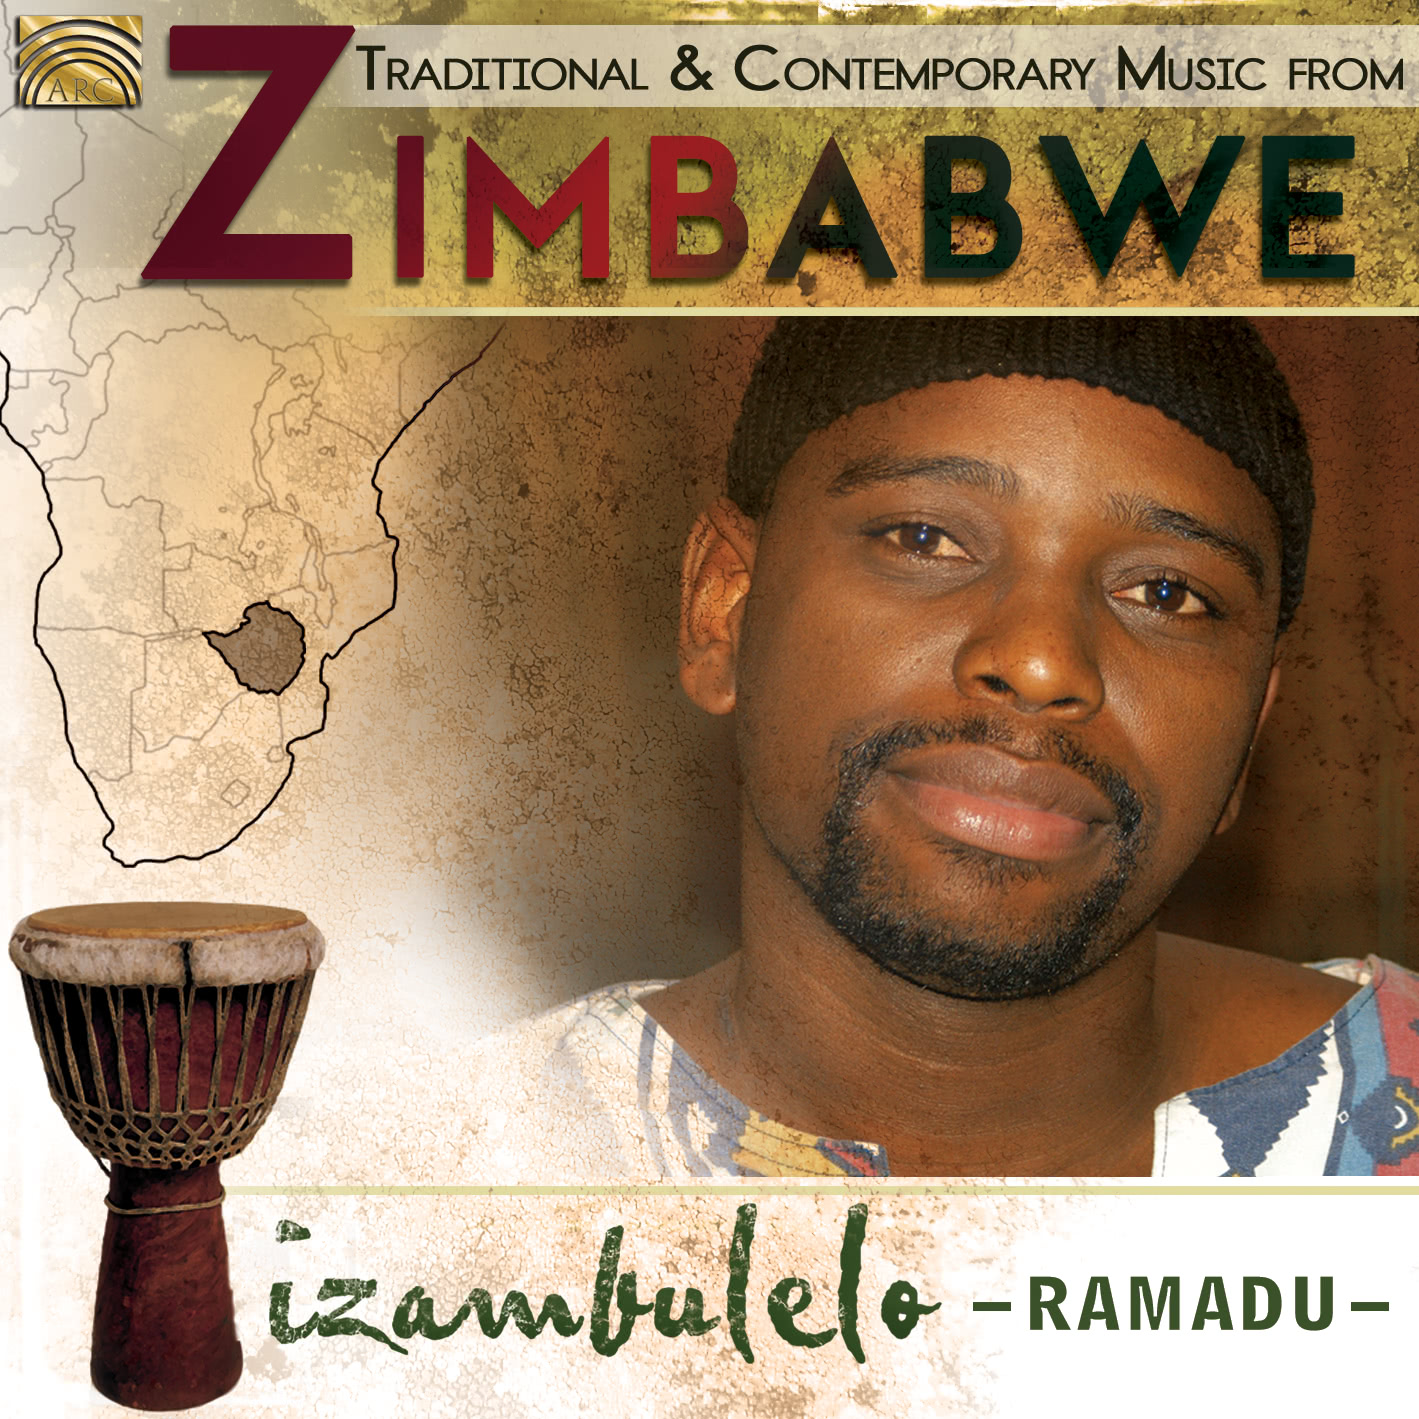 EUCD2717 Izambulelo - Traditional and Contemporary Music from Zimbabwe